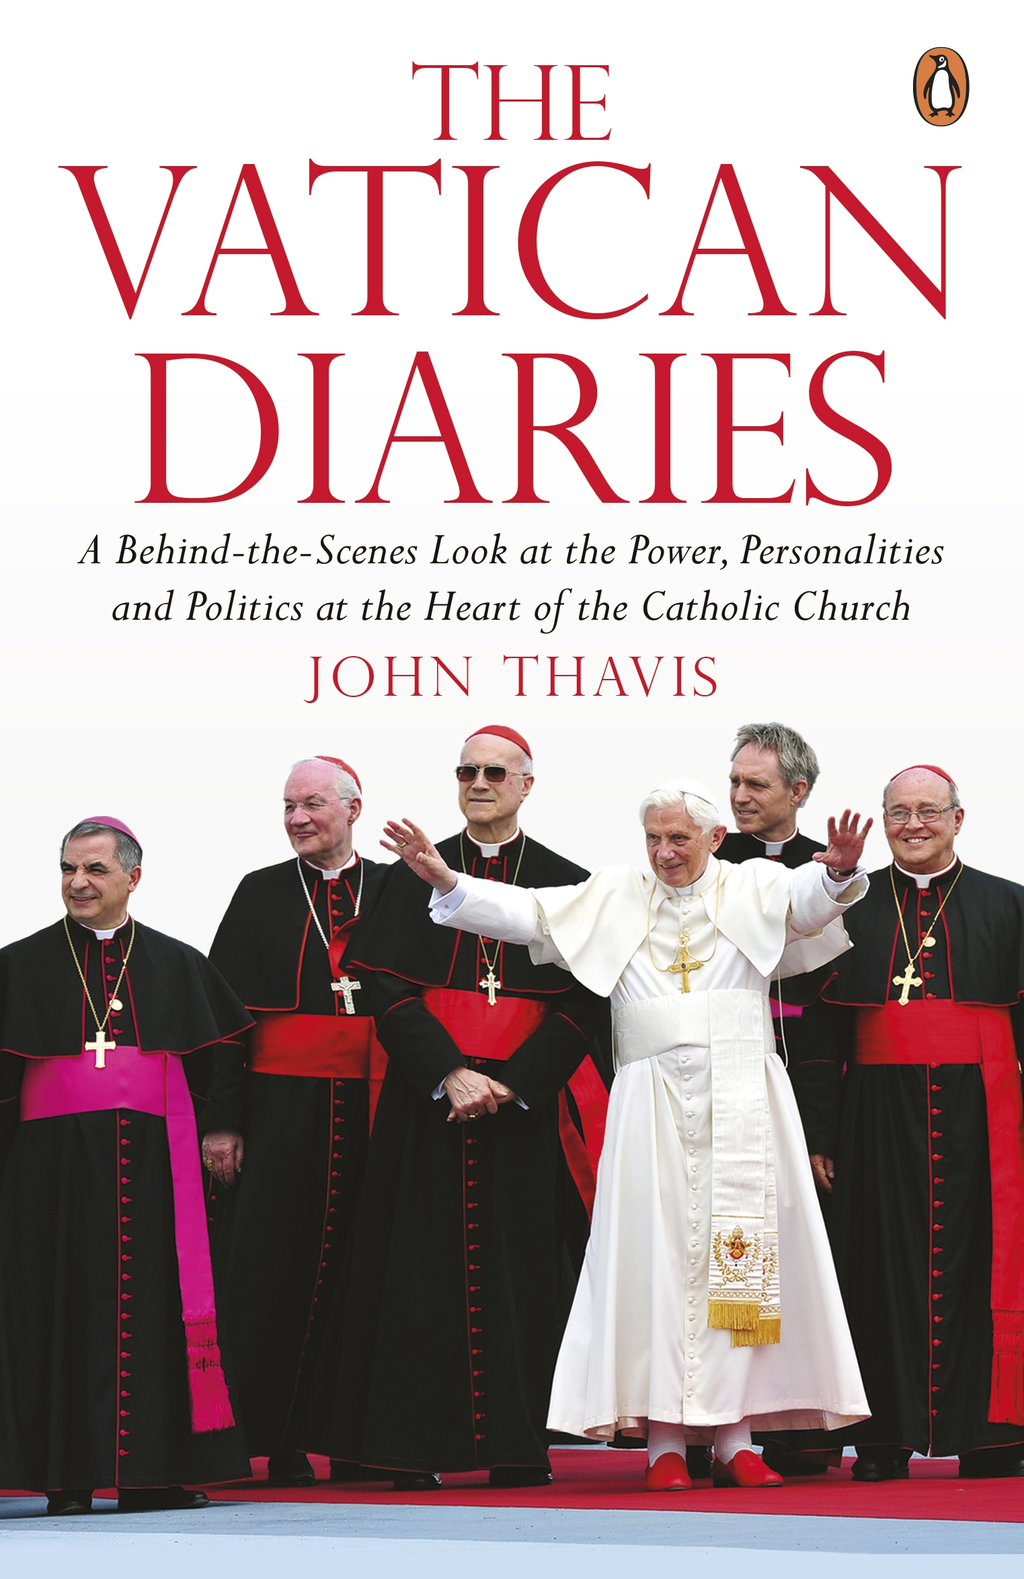 The Vatican Diaries A Behind-the-Scenes Look at the Power,  Personalities and Politics at the Heart of the Catholic Church